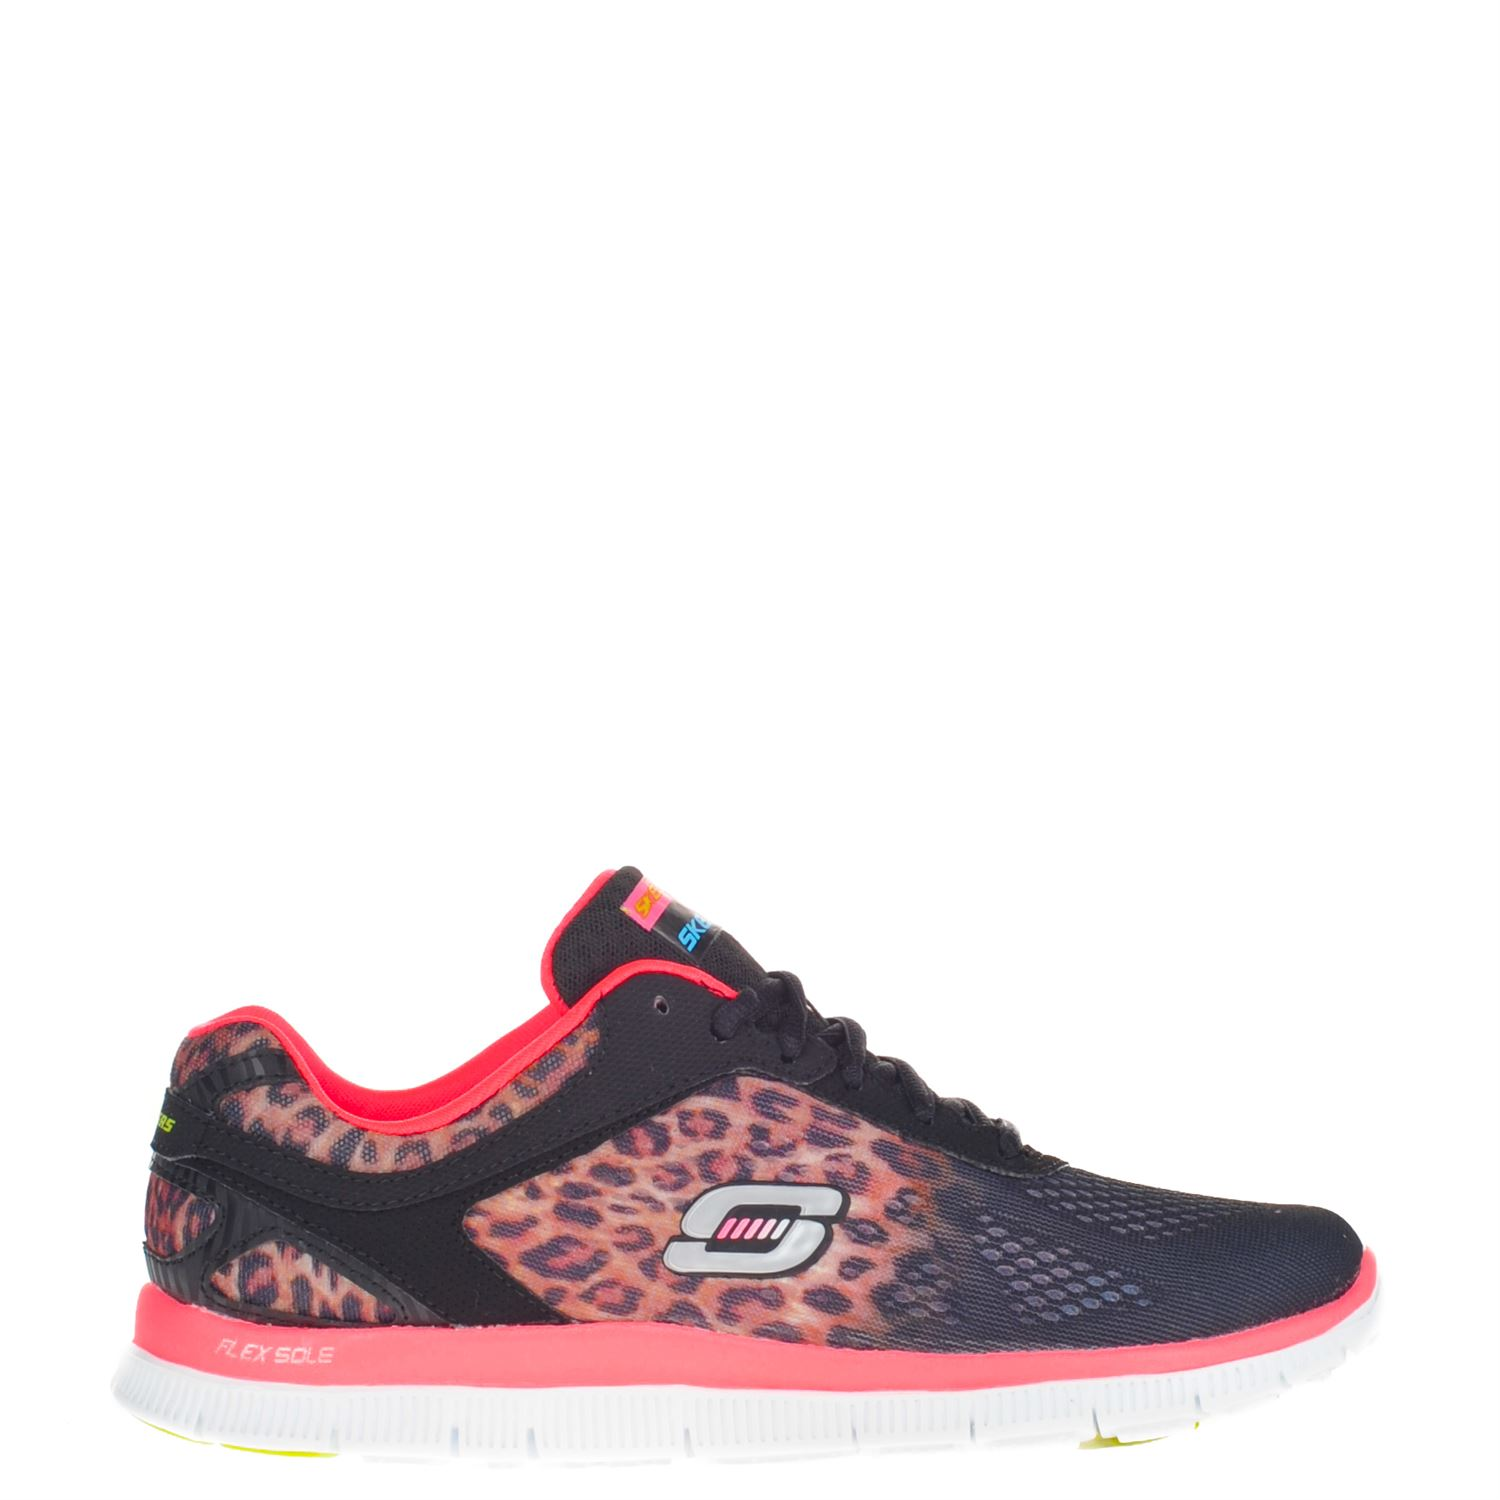 Skechers Dames Skechers Dames Lage Sneakers Bruin